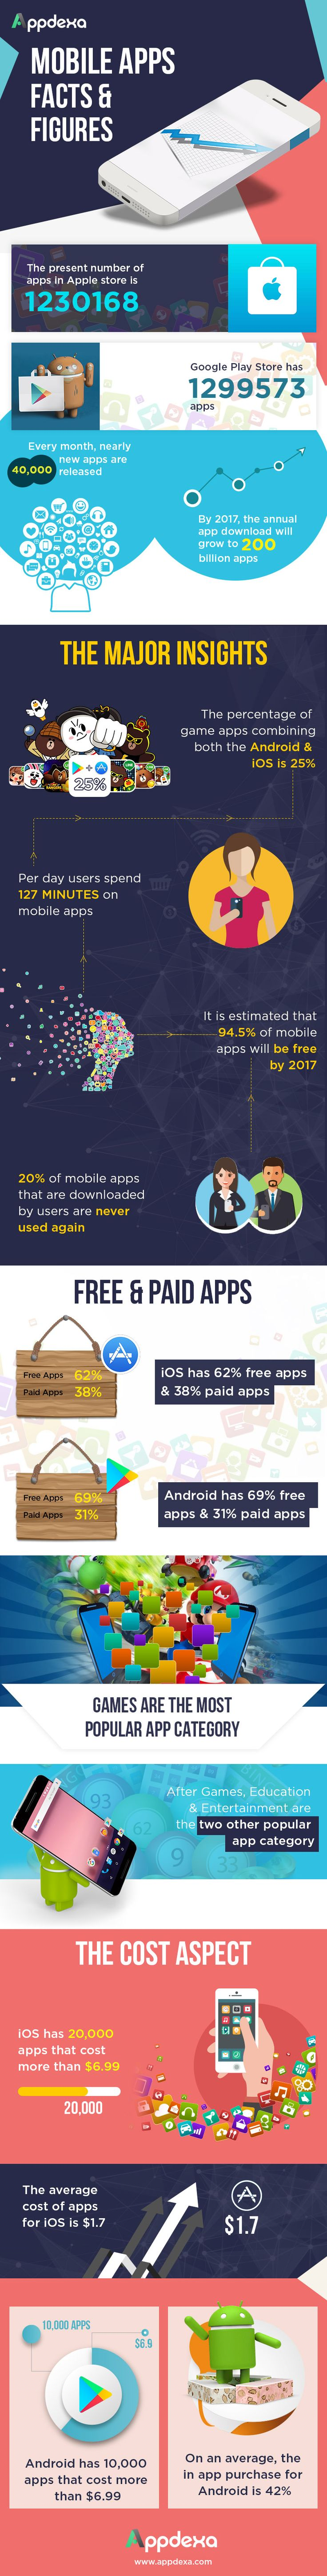 Mobile Apps Facts And Figures